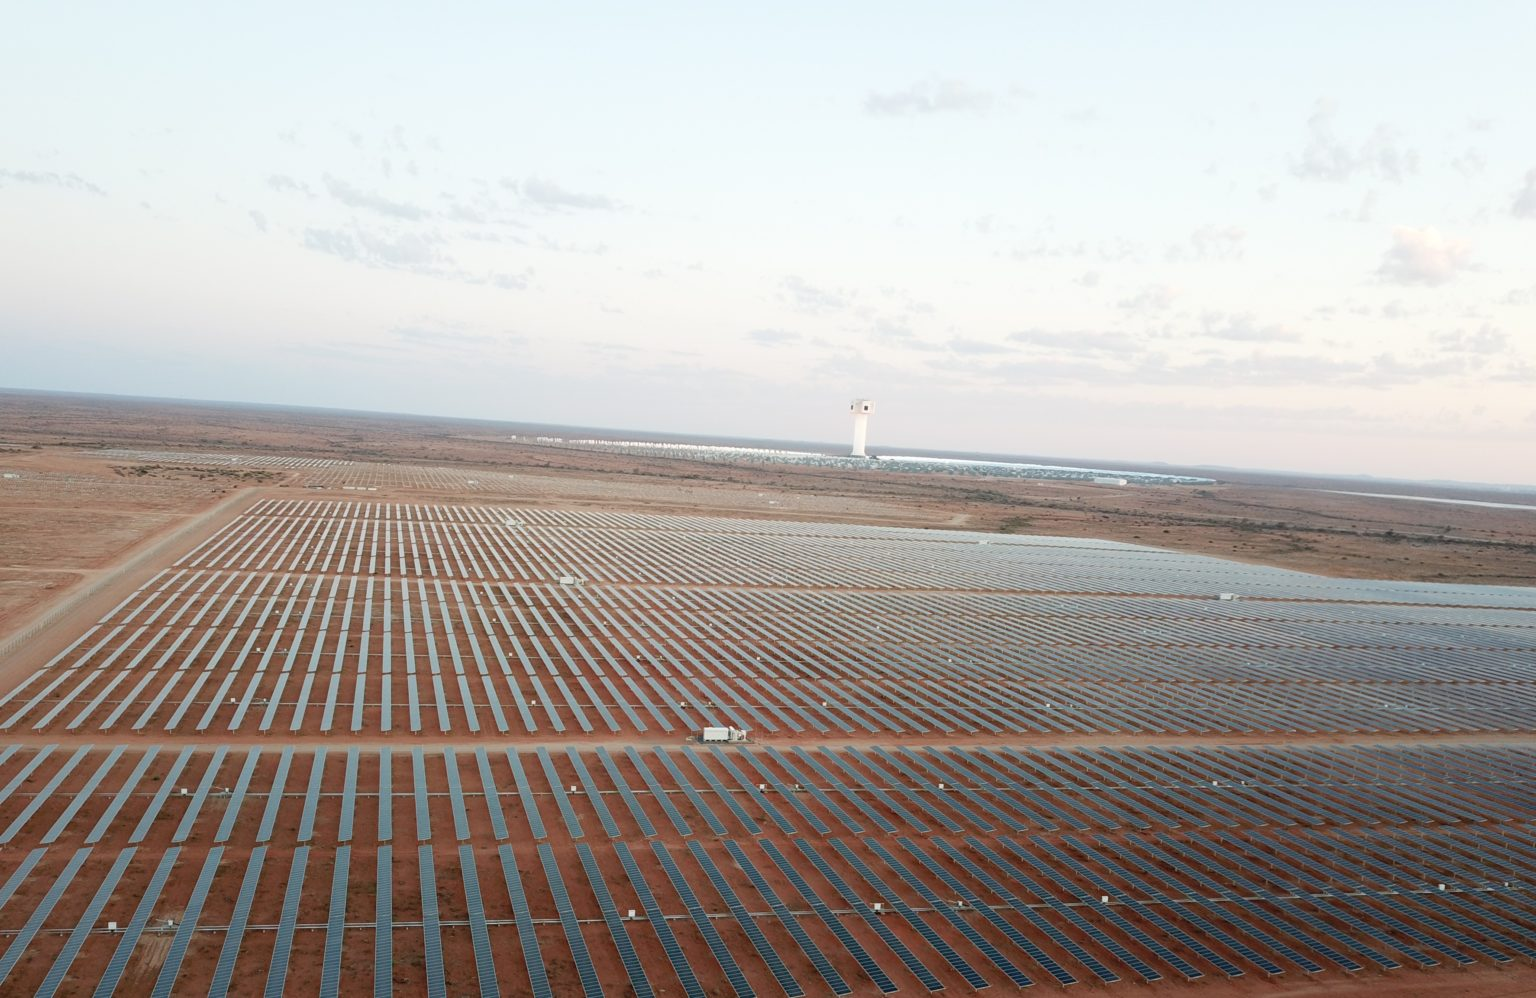 The first phase of the project, known as Sirius, is expected to generate 217 GWh of renewable energy and cut down on more than 180,000 tonnes of CO2 emissions annually. Image: Scatec Solar